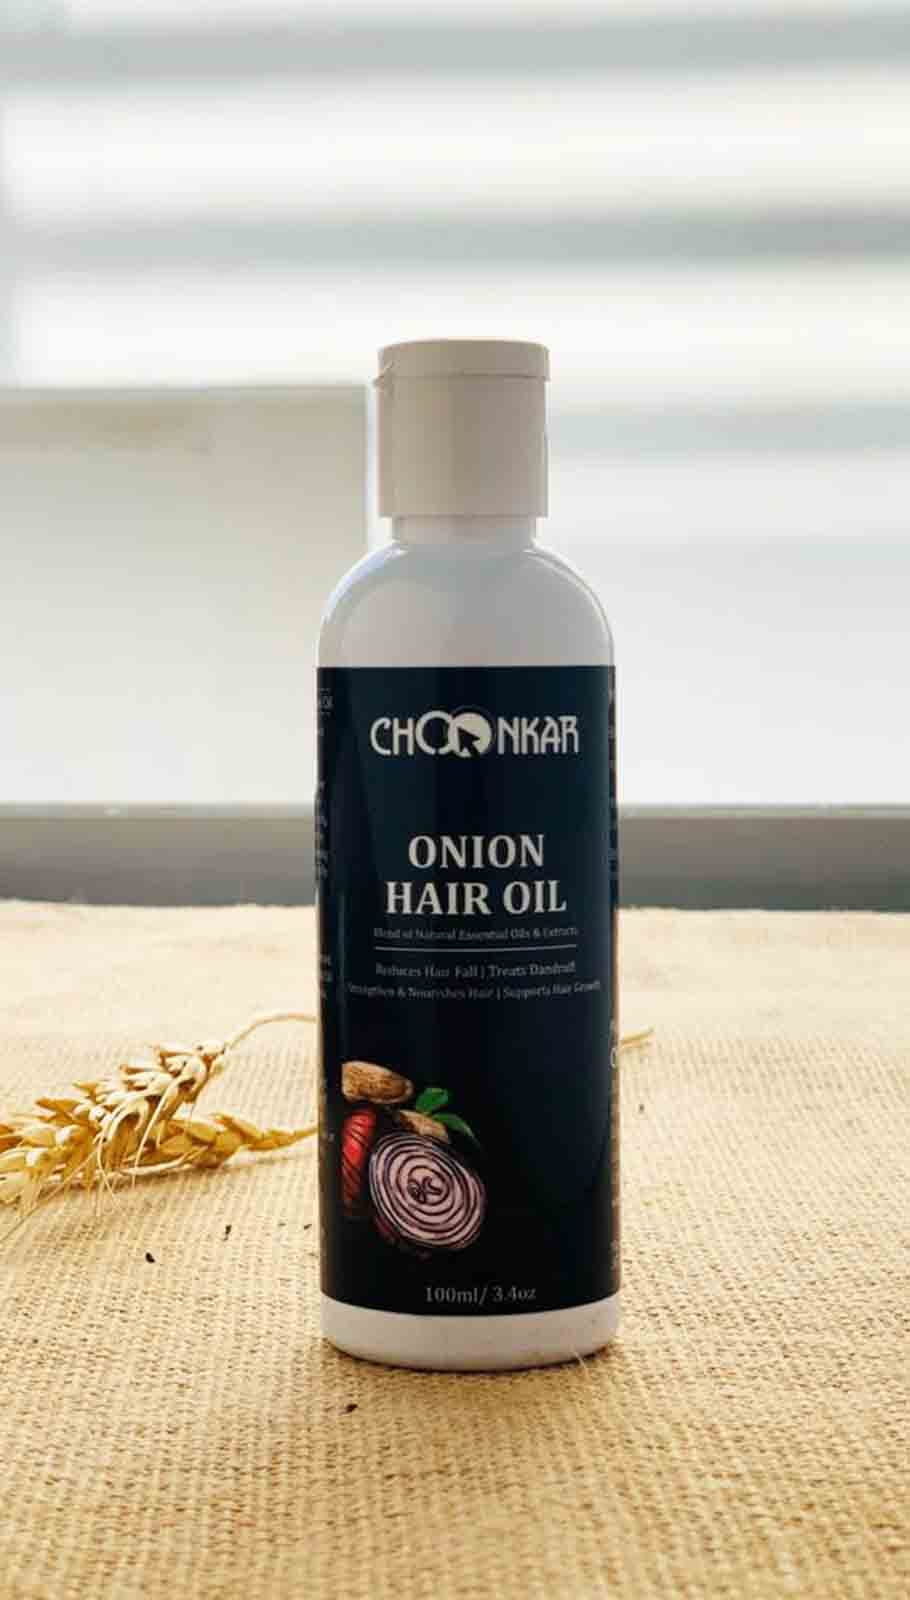 Choonkar Onion Hair Oil